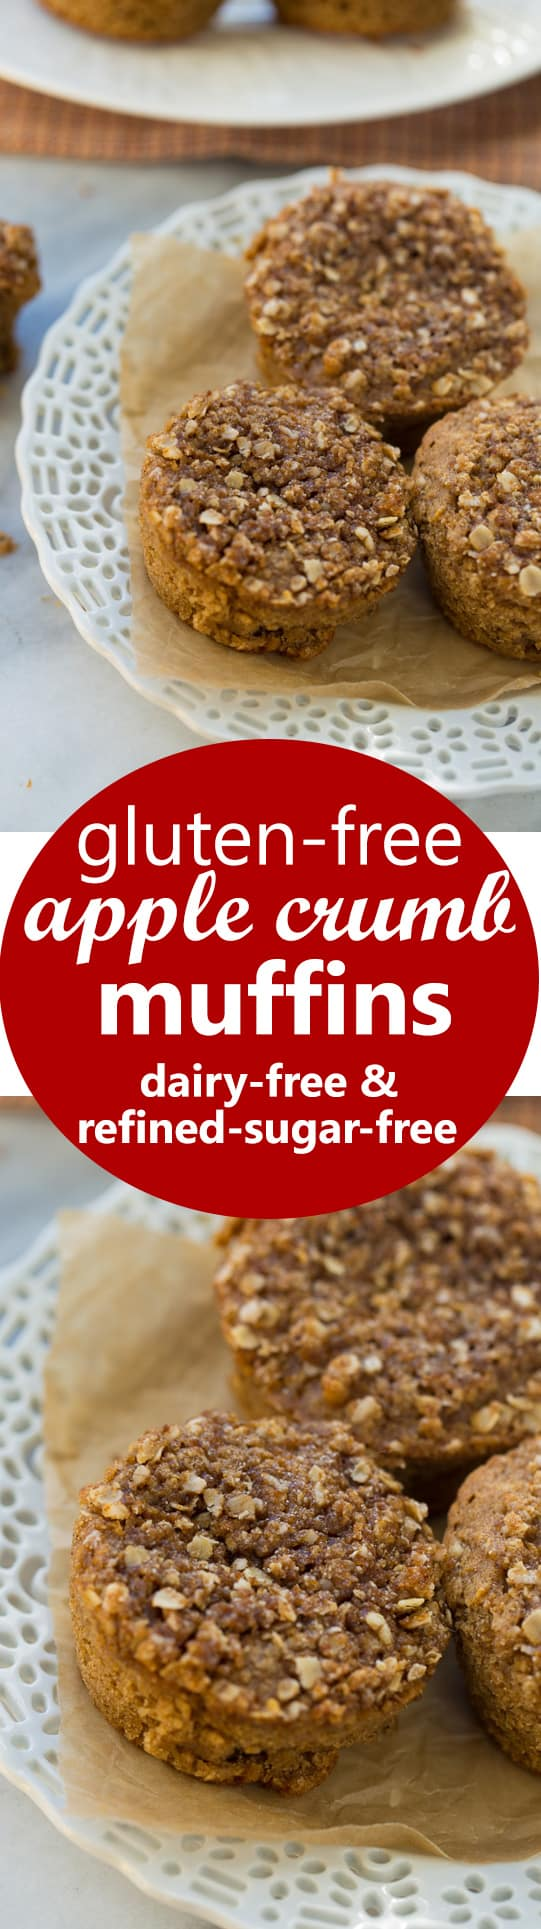 Gluten-Free Apple Muffins! These muffins have the best flavor and texture. They're also made with a healthy flour blend and are dairy/refined-sugar free!